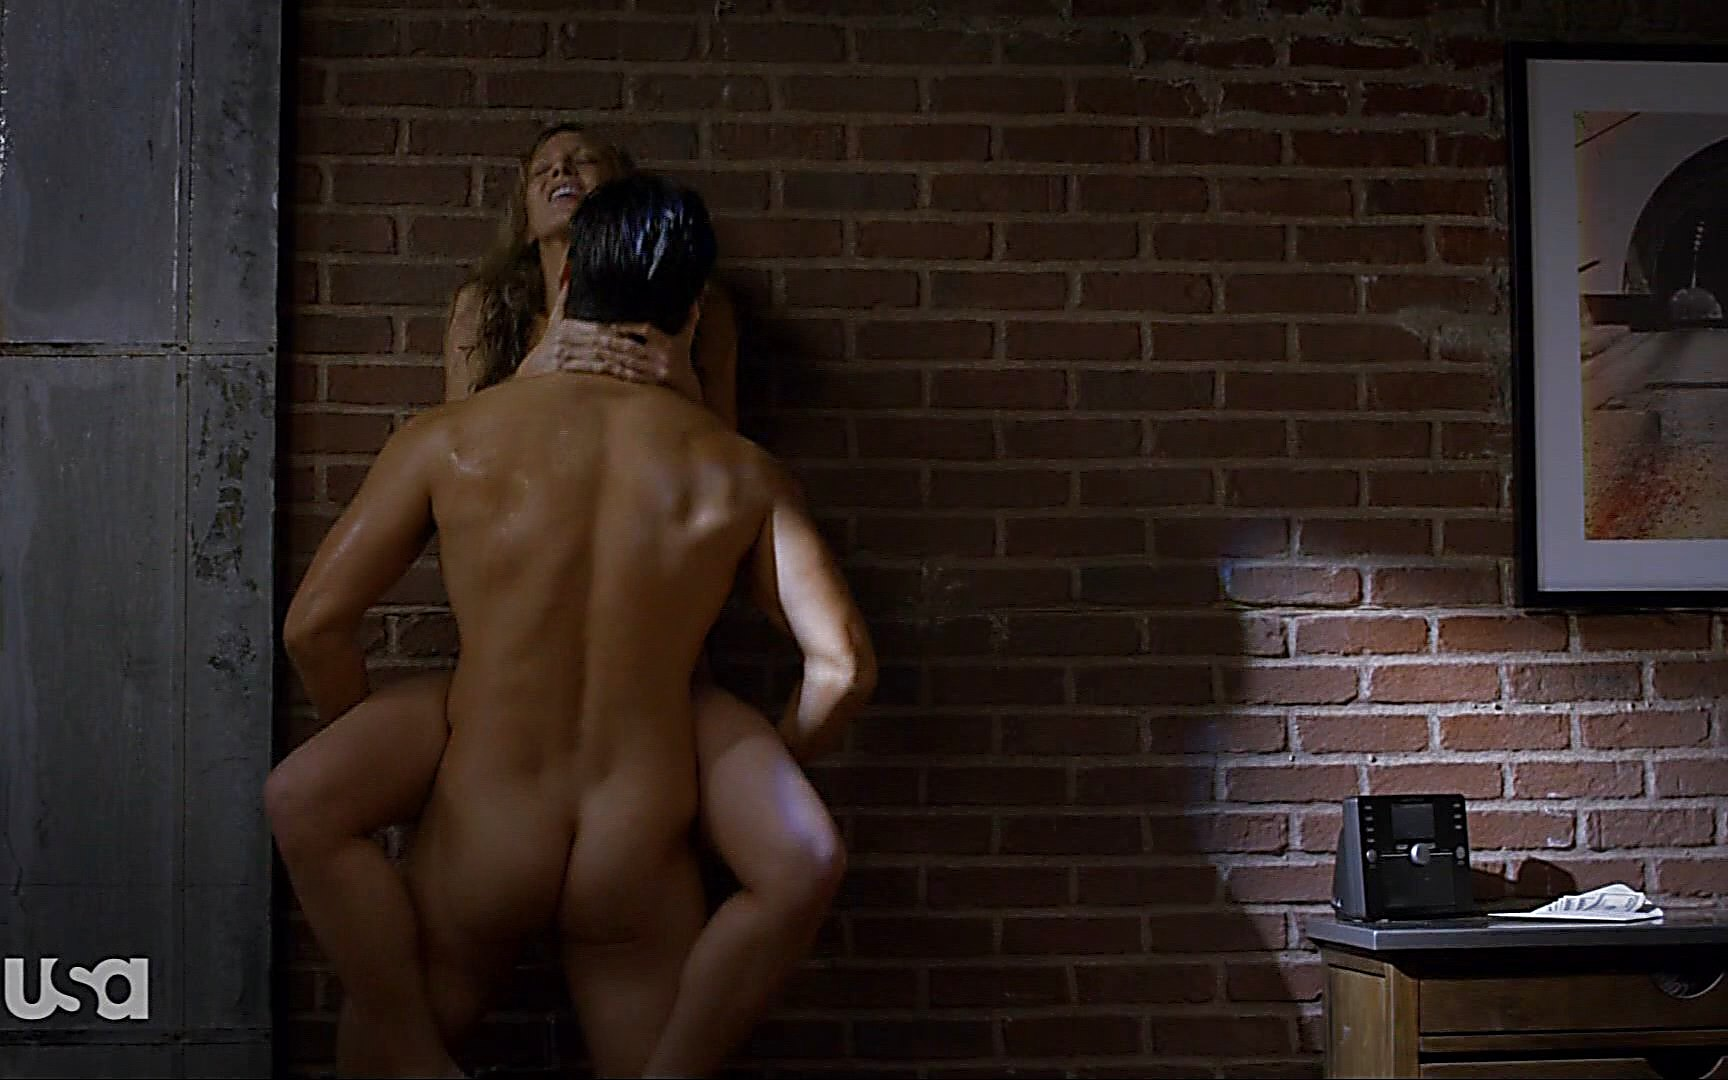 Blair Redford sexy shirtless scene October 18, 2015, 6pm